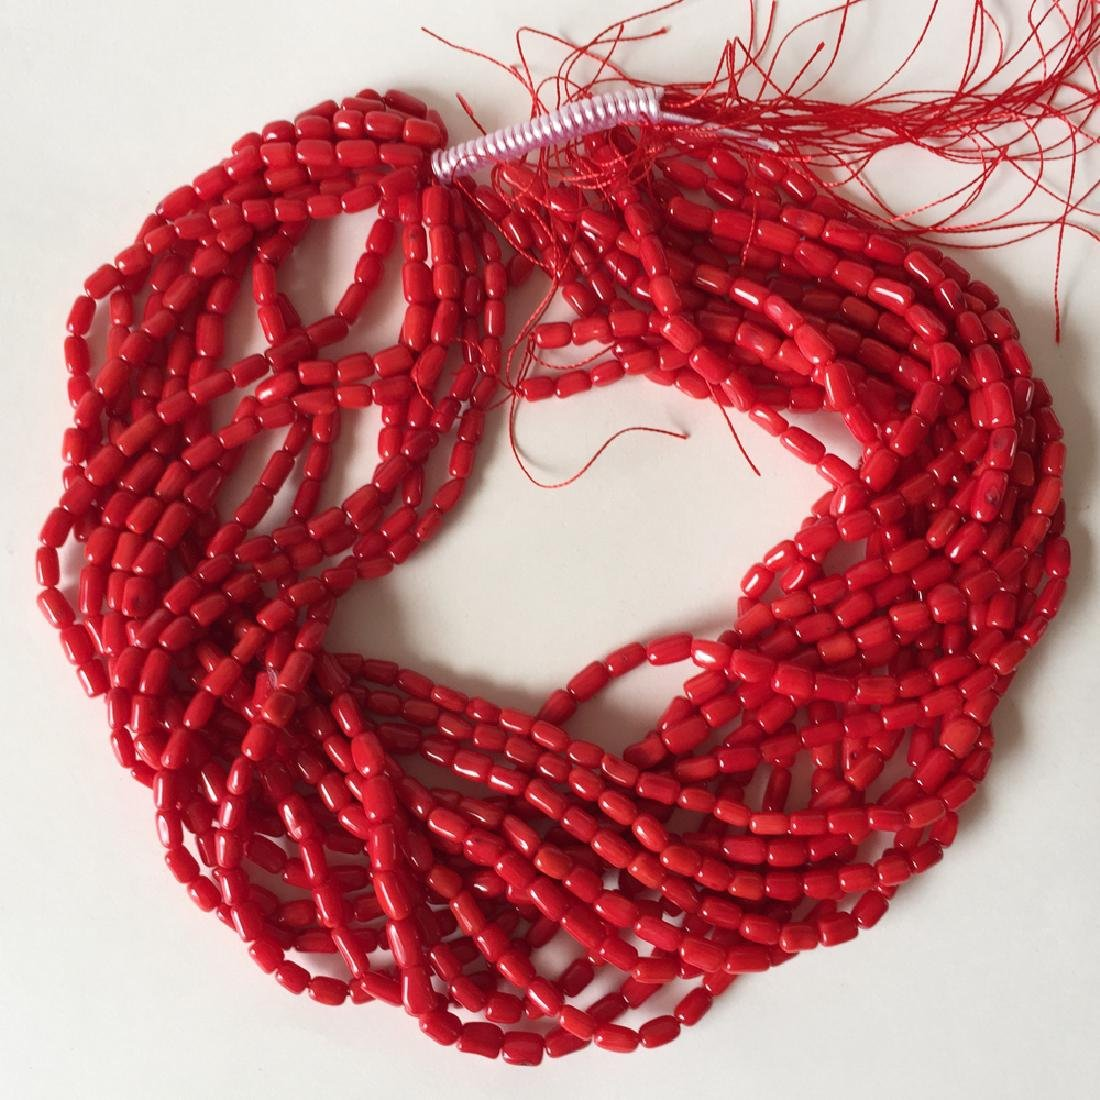 Red color genuine coral roots tube shape beads 15